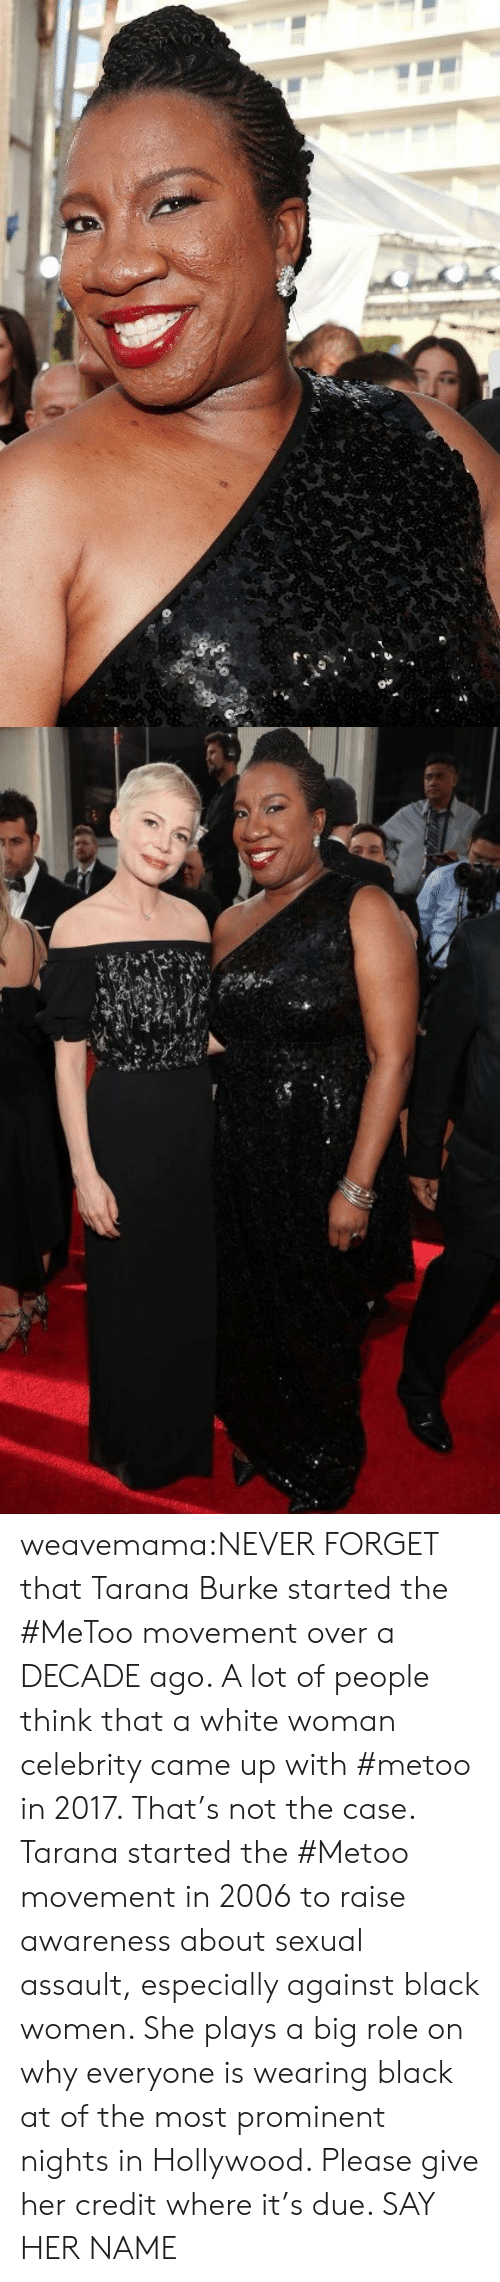 Target, Tumblr, and Black: weavemama:NEVER FORGET that Tarana Burke started the #MeToo movement over a DECADE ago. A lot of people think that a white woman celebrity came up with #metoo in 2017. That's not the case. Tarana started the #Metoo movement in 2006 to raise awareness about sexual assault, especially against black women. She plays a big role on why everyone is wearing black at of the most prominent nights in Hollywood. Please give her credit where it's due. SAY HER NAME